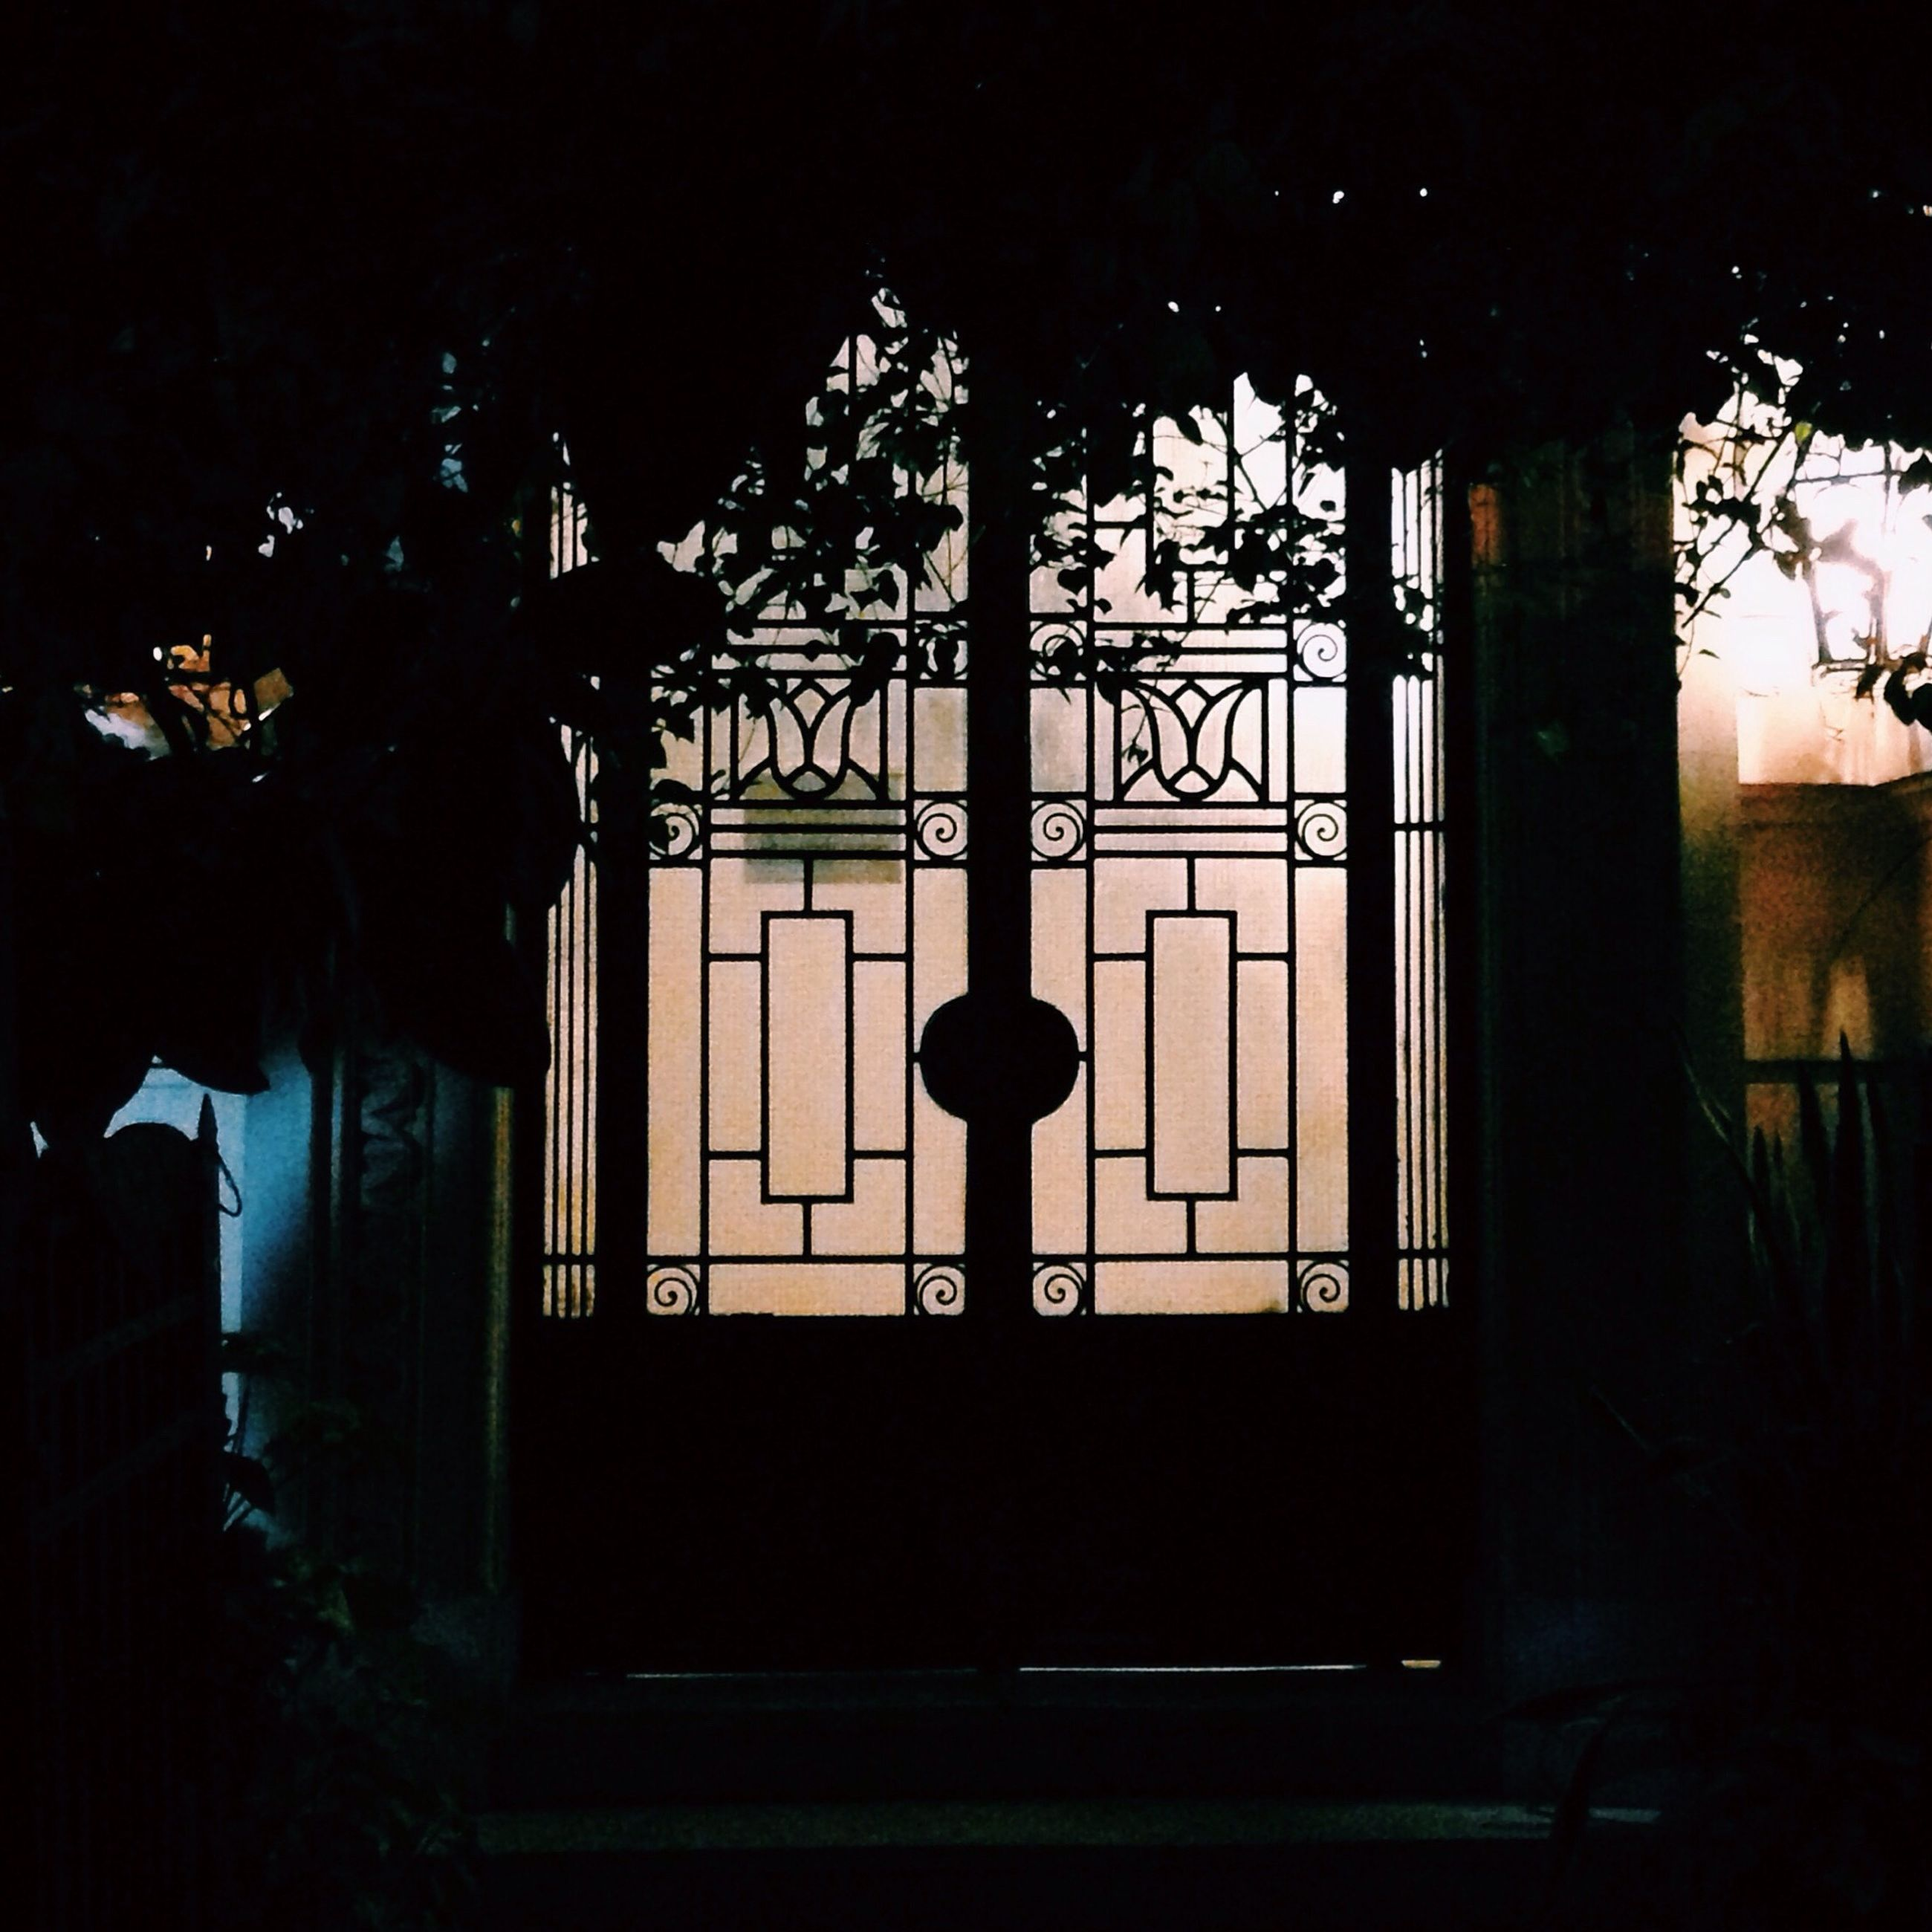 built structure, architecture, silhouette, window, night, building exterior, lighting equipment, illuminated, tree, house, dark, low angle view, street light, indoors, no people, closed, entrance, gate, door